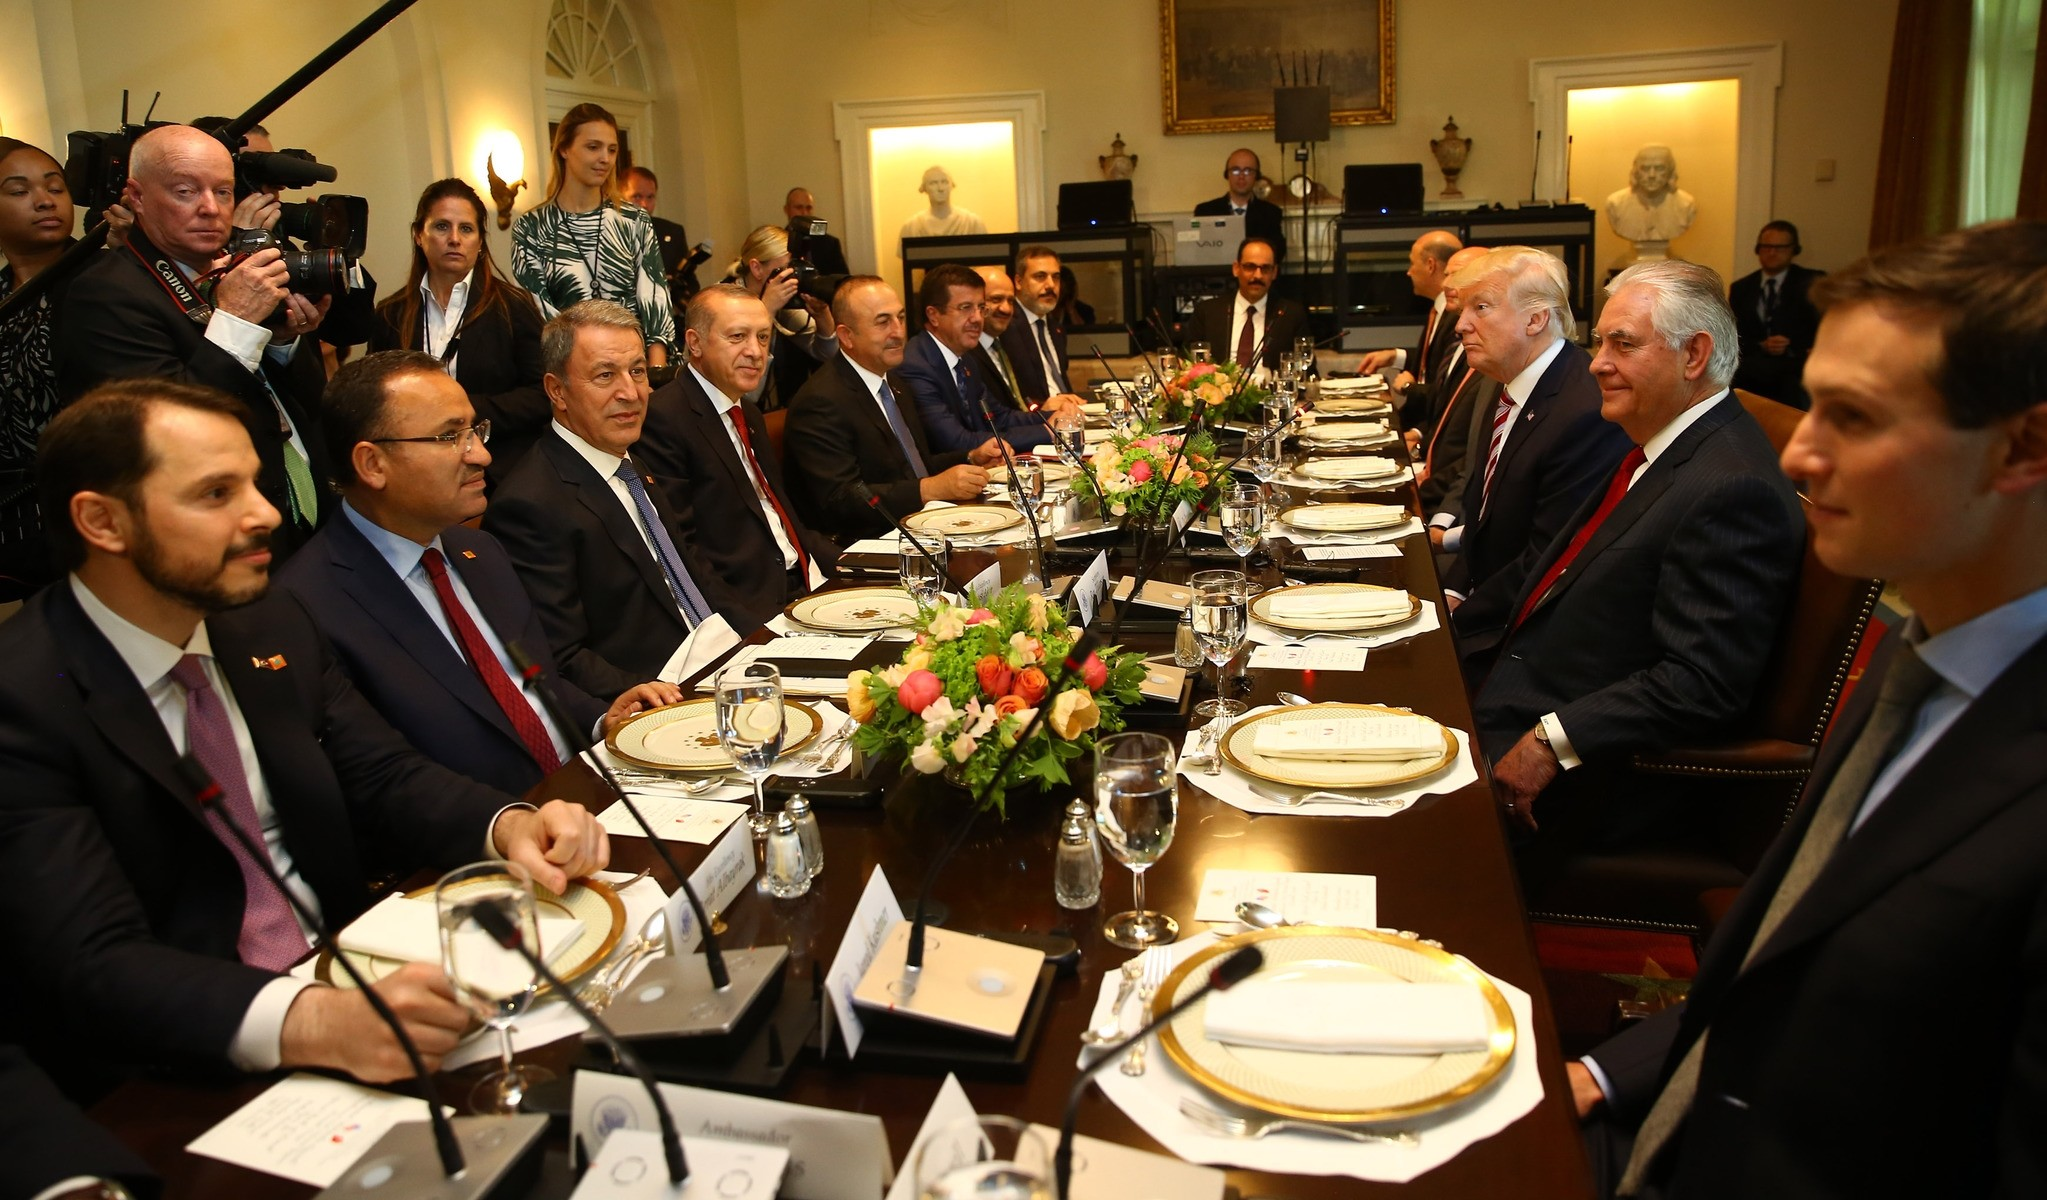 Presidents Recep Tayyip Erdou011fan, Donald Trump and their delegations prepare to have lunch in the Cabinet Room of the White House in Washington, May 16.